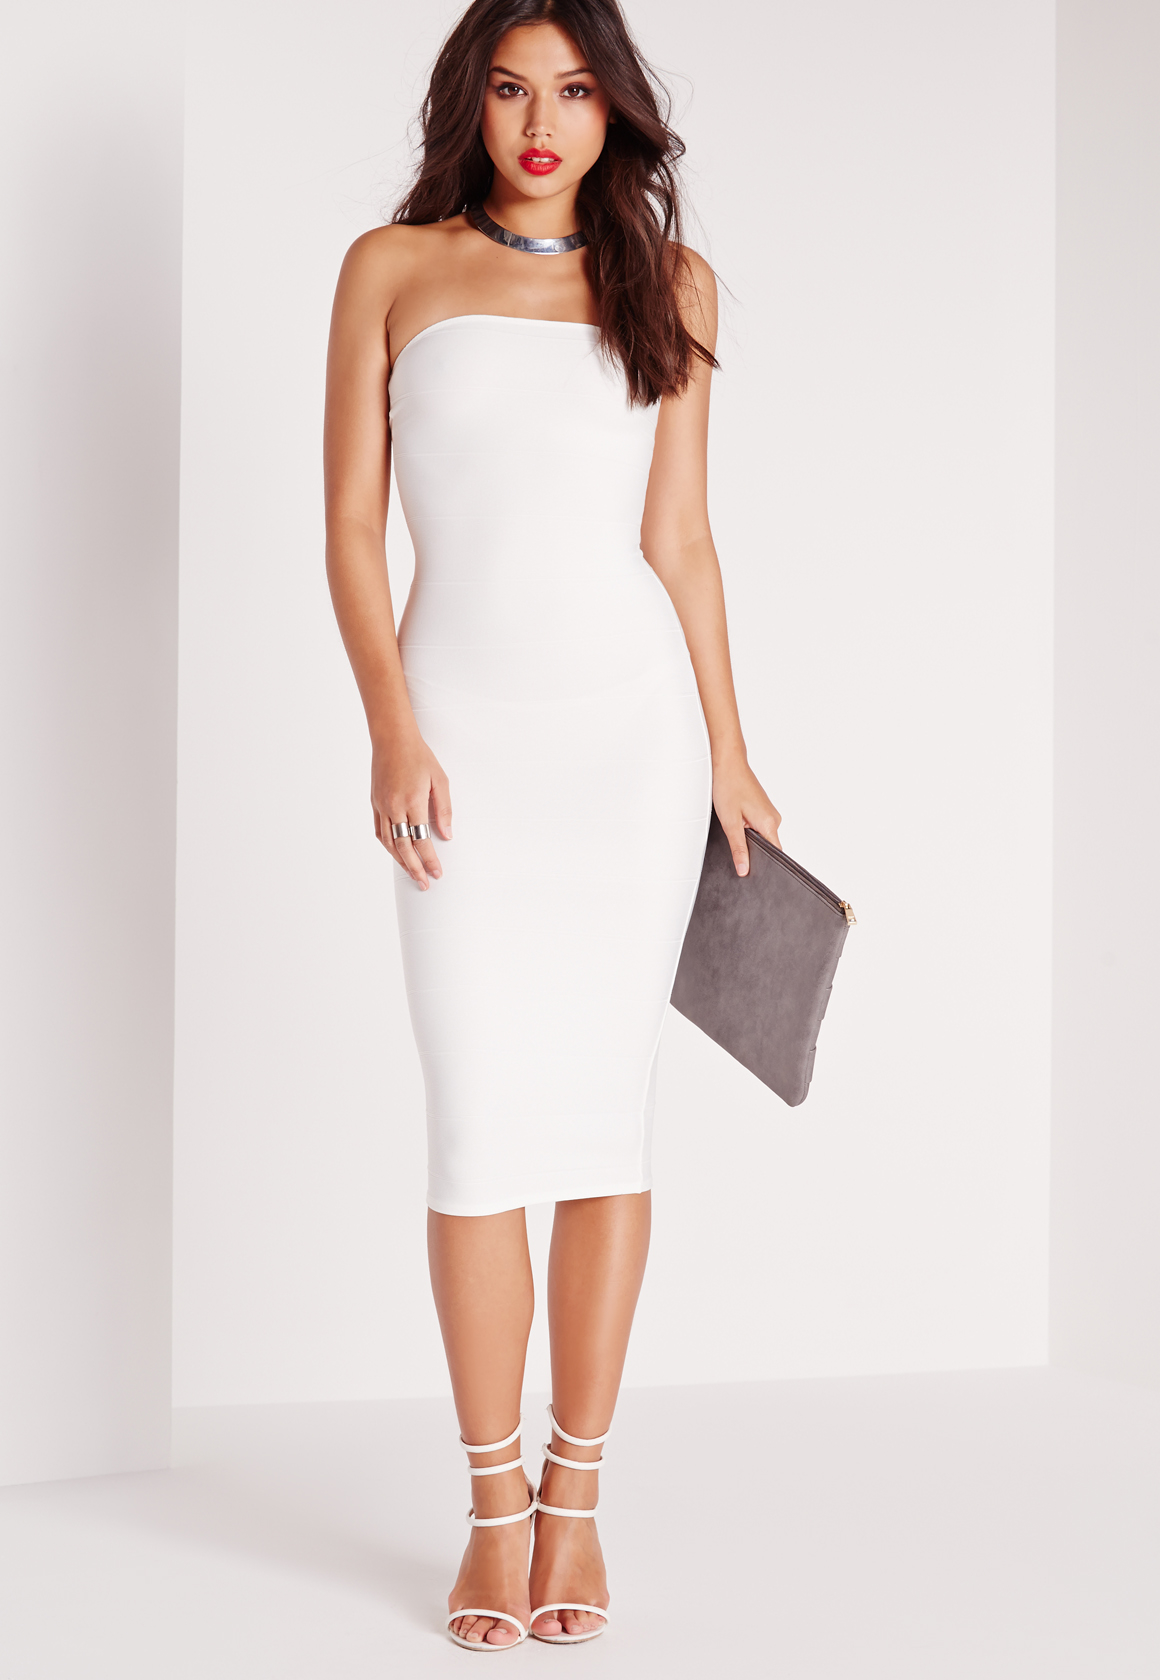 b5389fe3e58 Lyst - Missguided Strapless Bandage Bodycon Midi Dress White in White